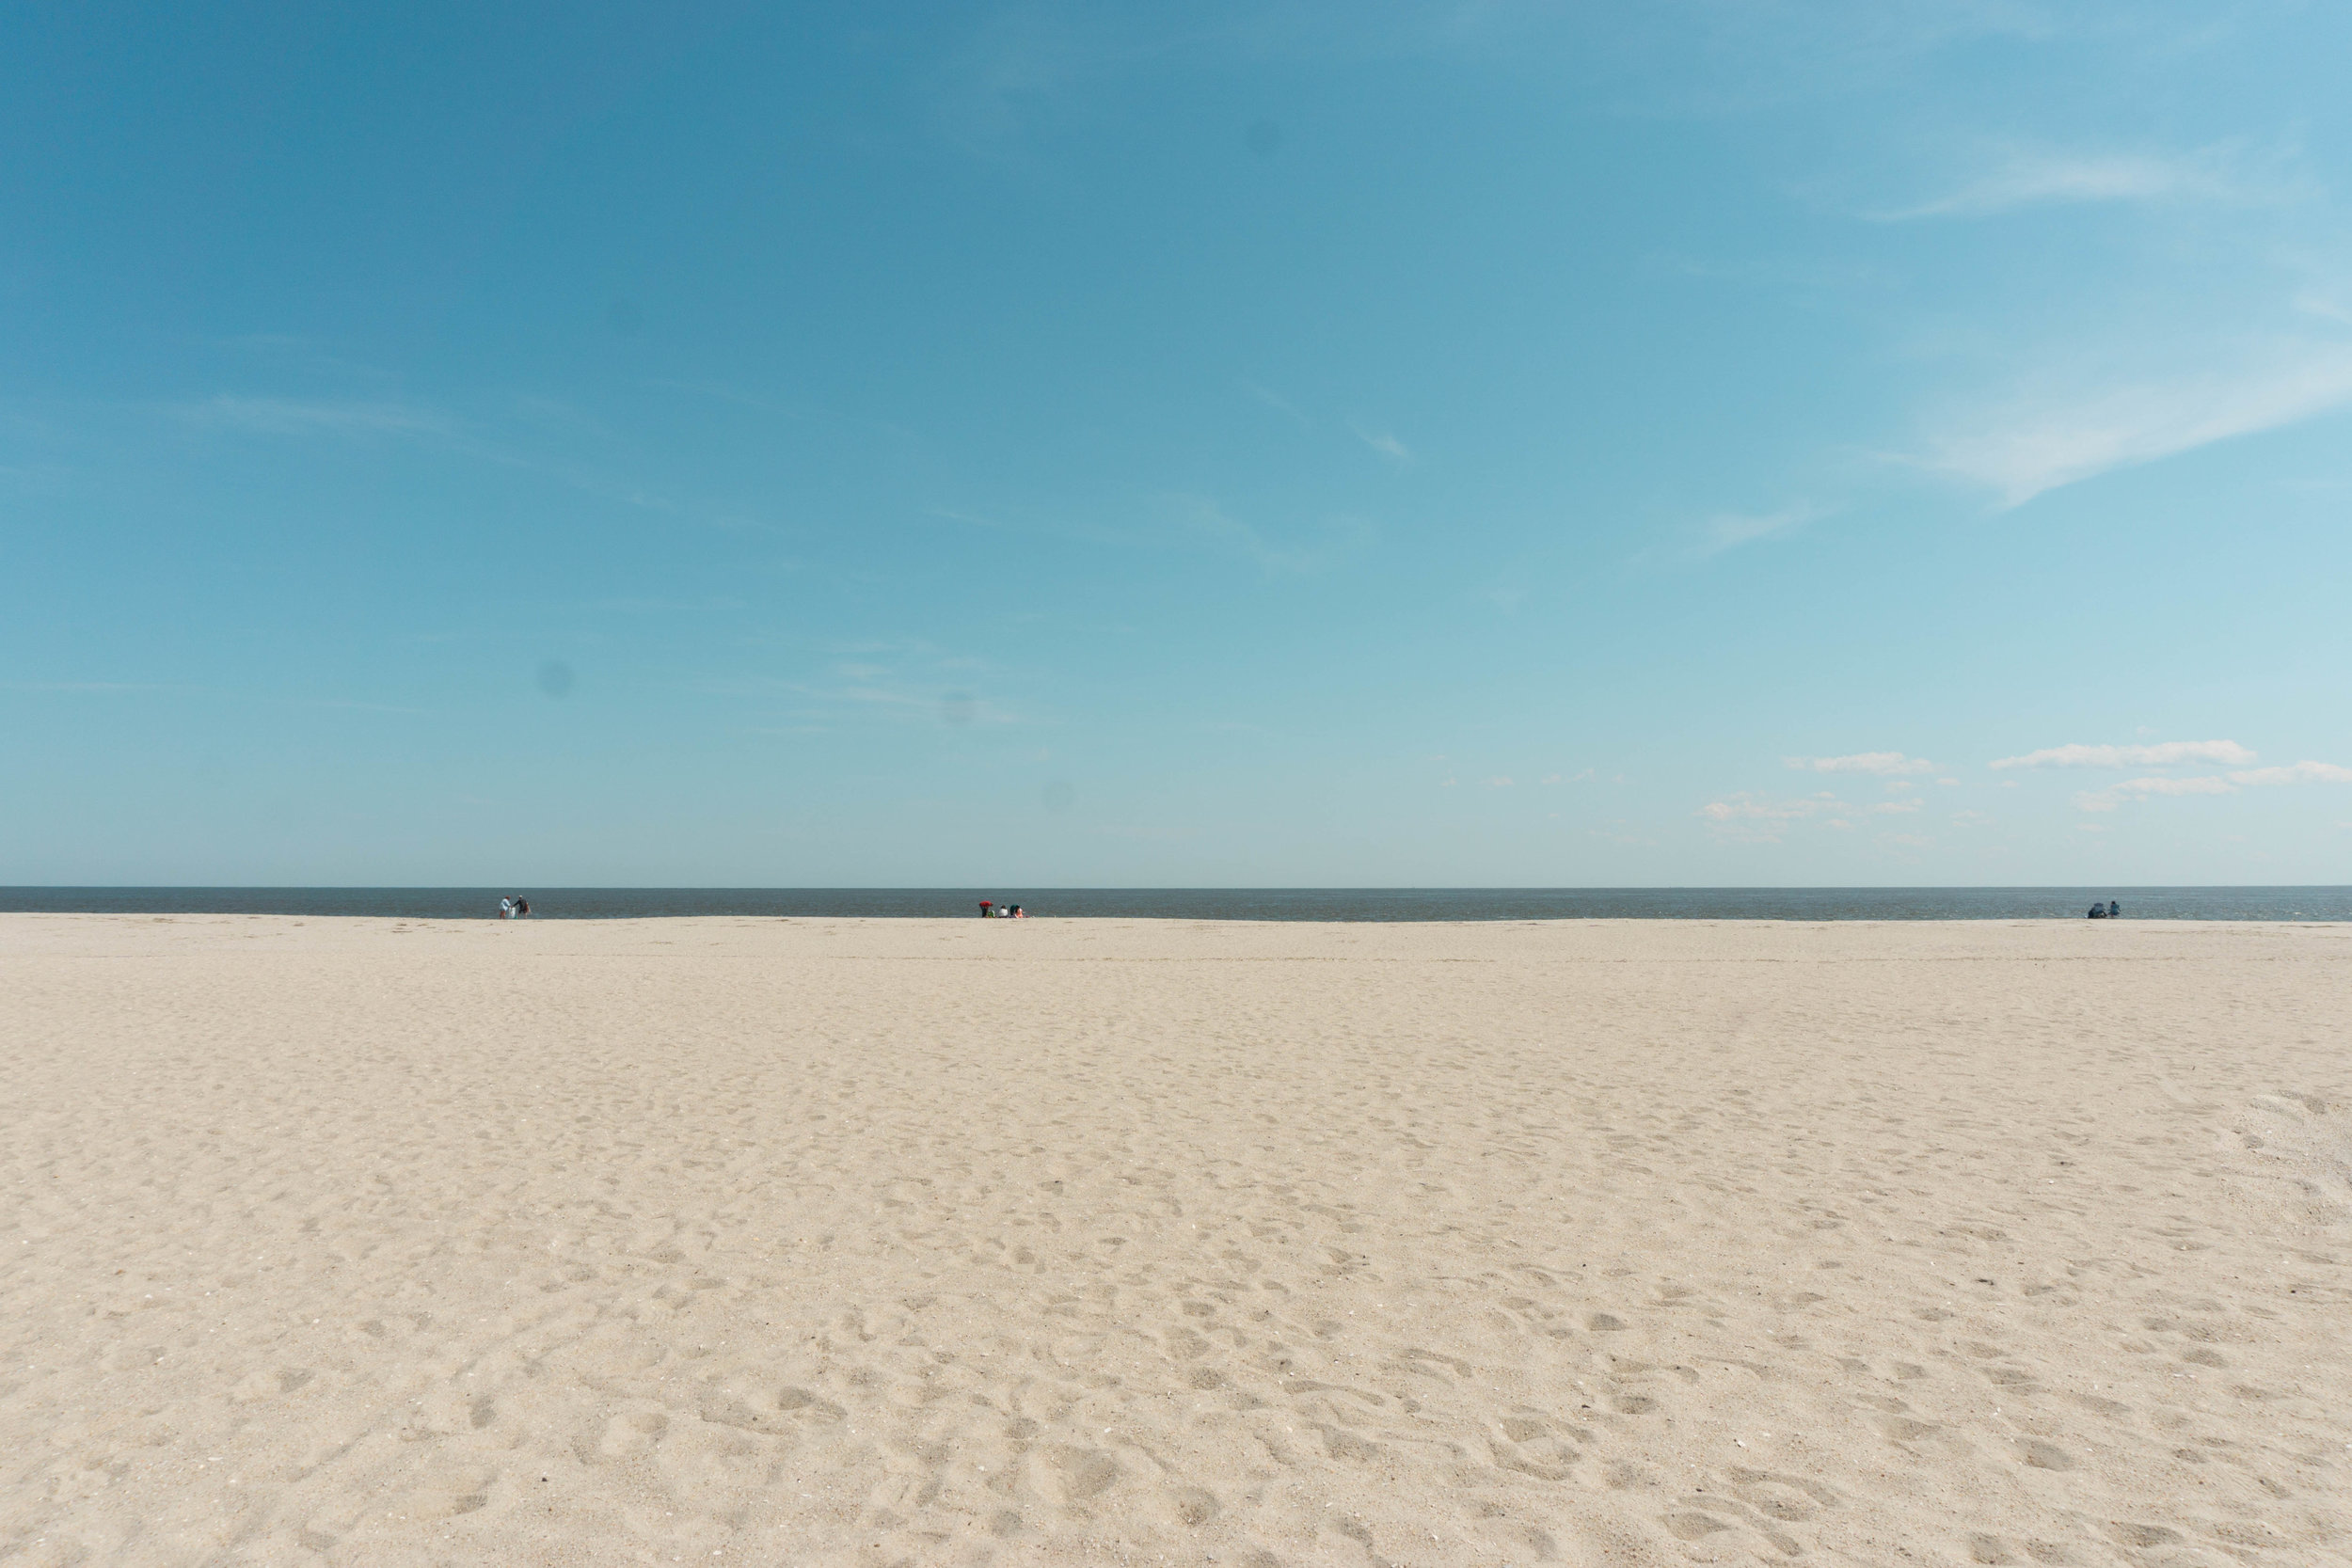 One Day in Cape May, New Jersey 4